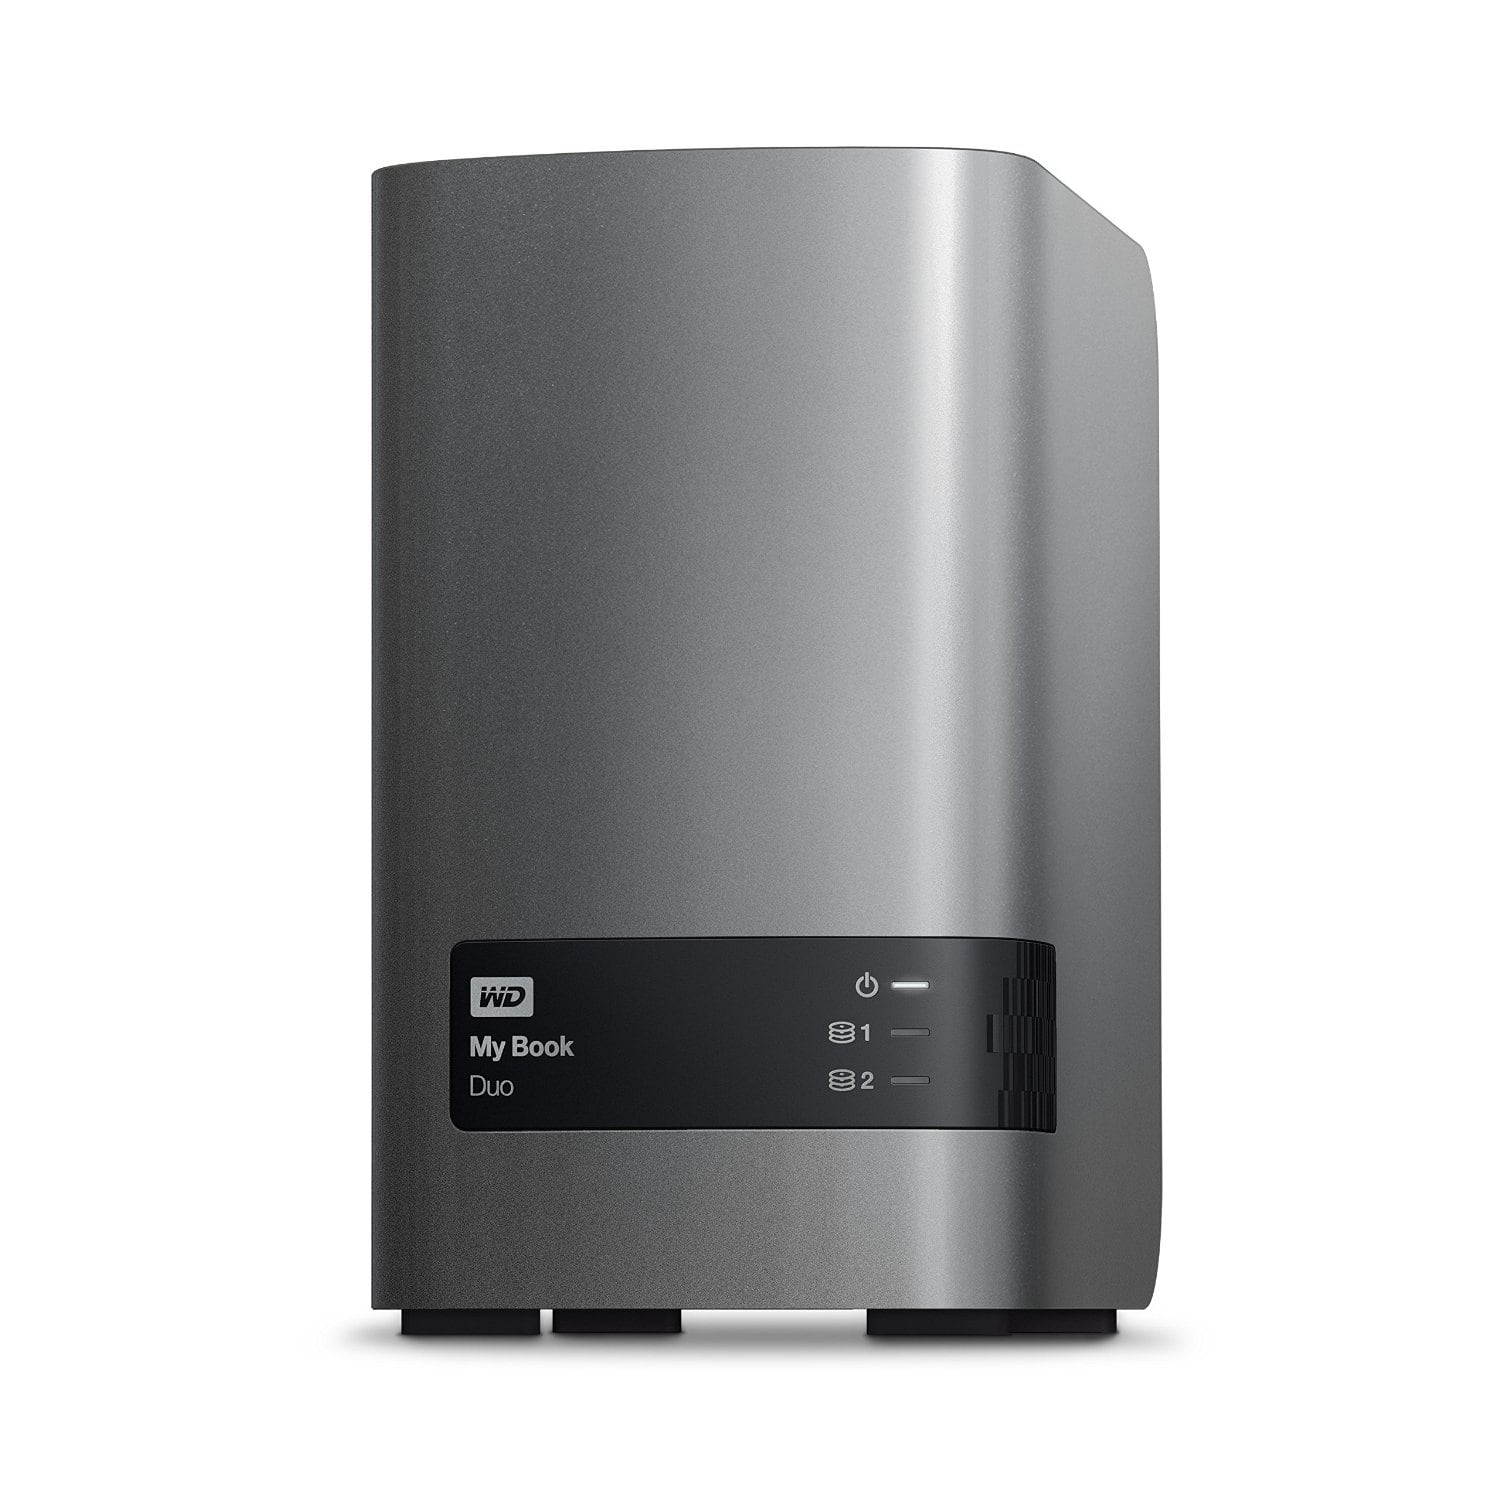 $469.66 ~ WD - My Book Duo 16TB 2-Bay External USB 3.0 Storage - WDBLWE0160JCH-NESN